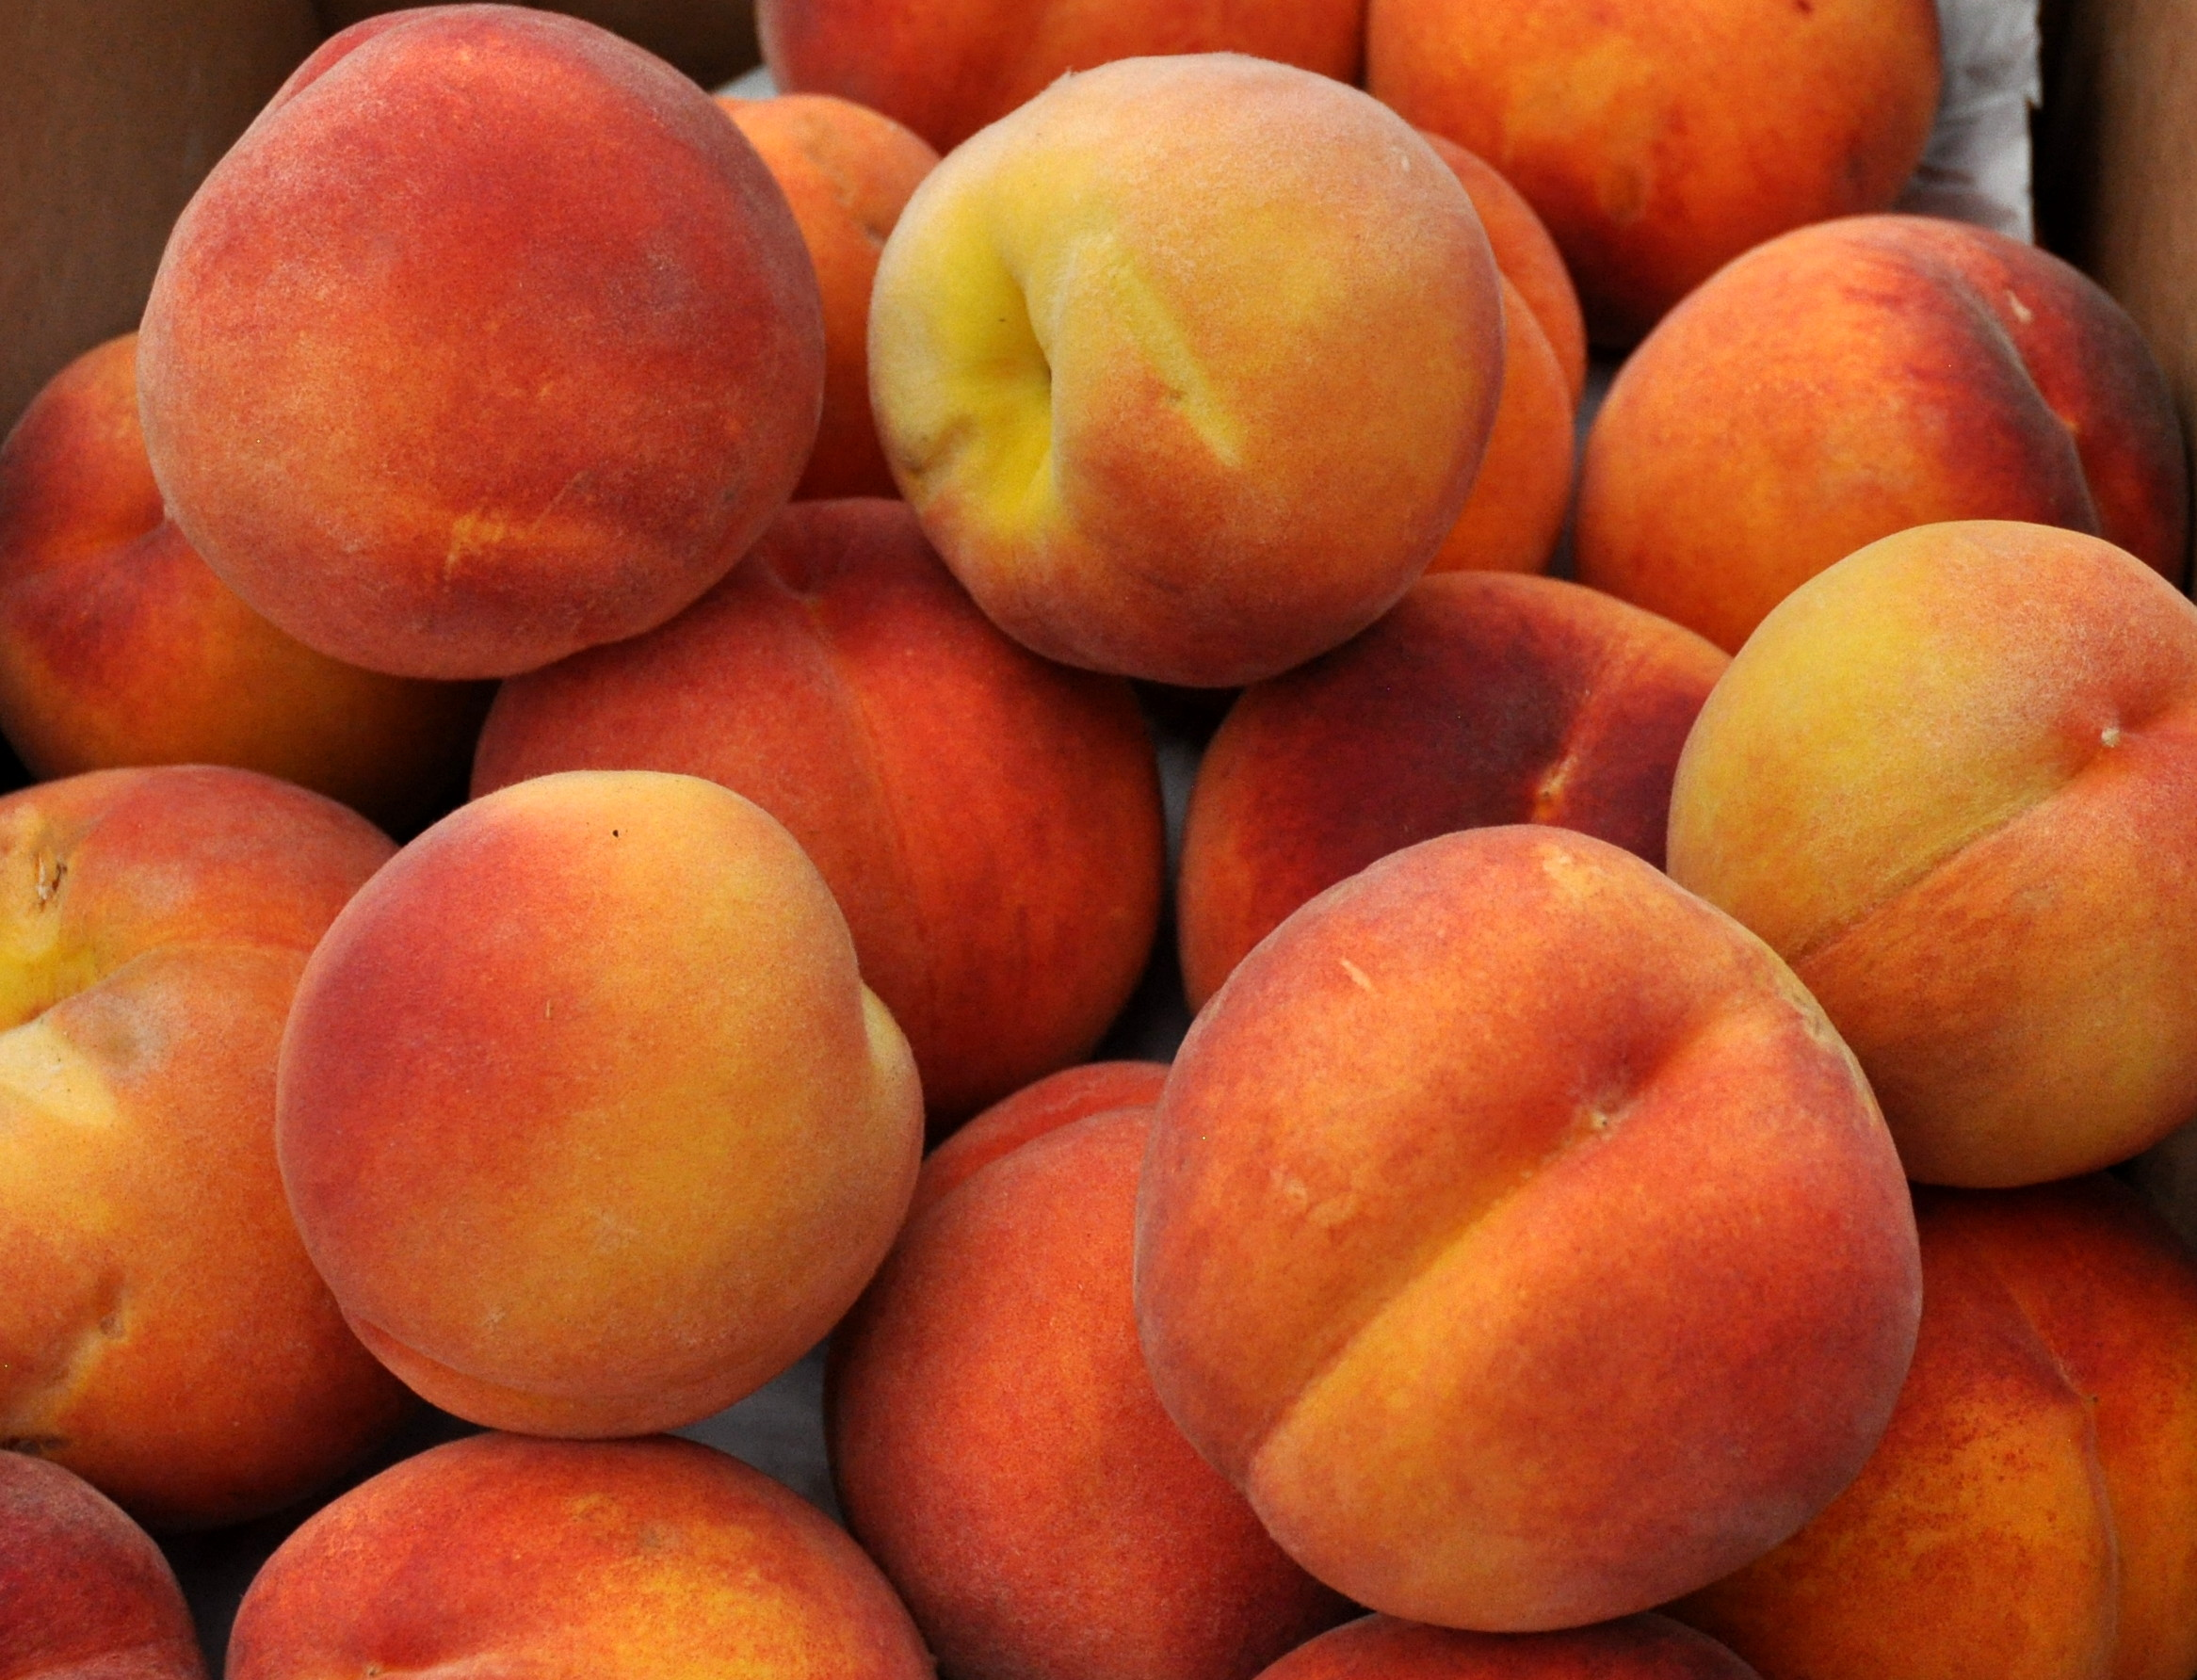 Suncrest peaches from Booth Canyon Orchard at Ballard Farmers Market. Copyright 2014 by Zachary D. Lyons.